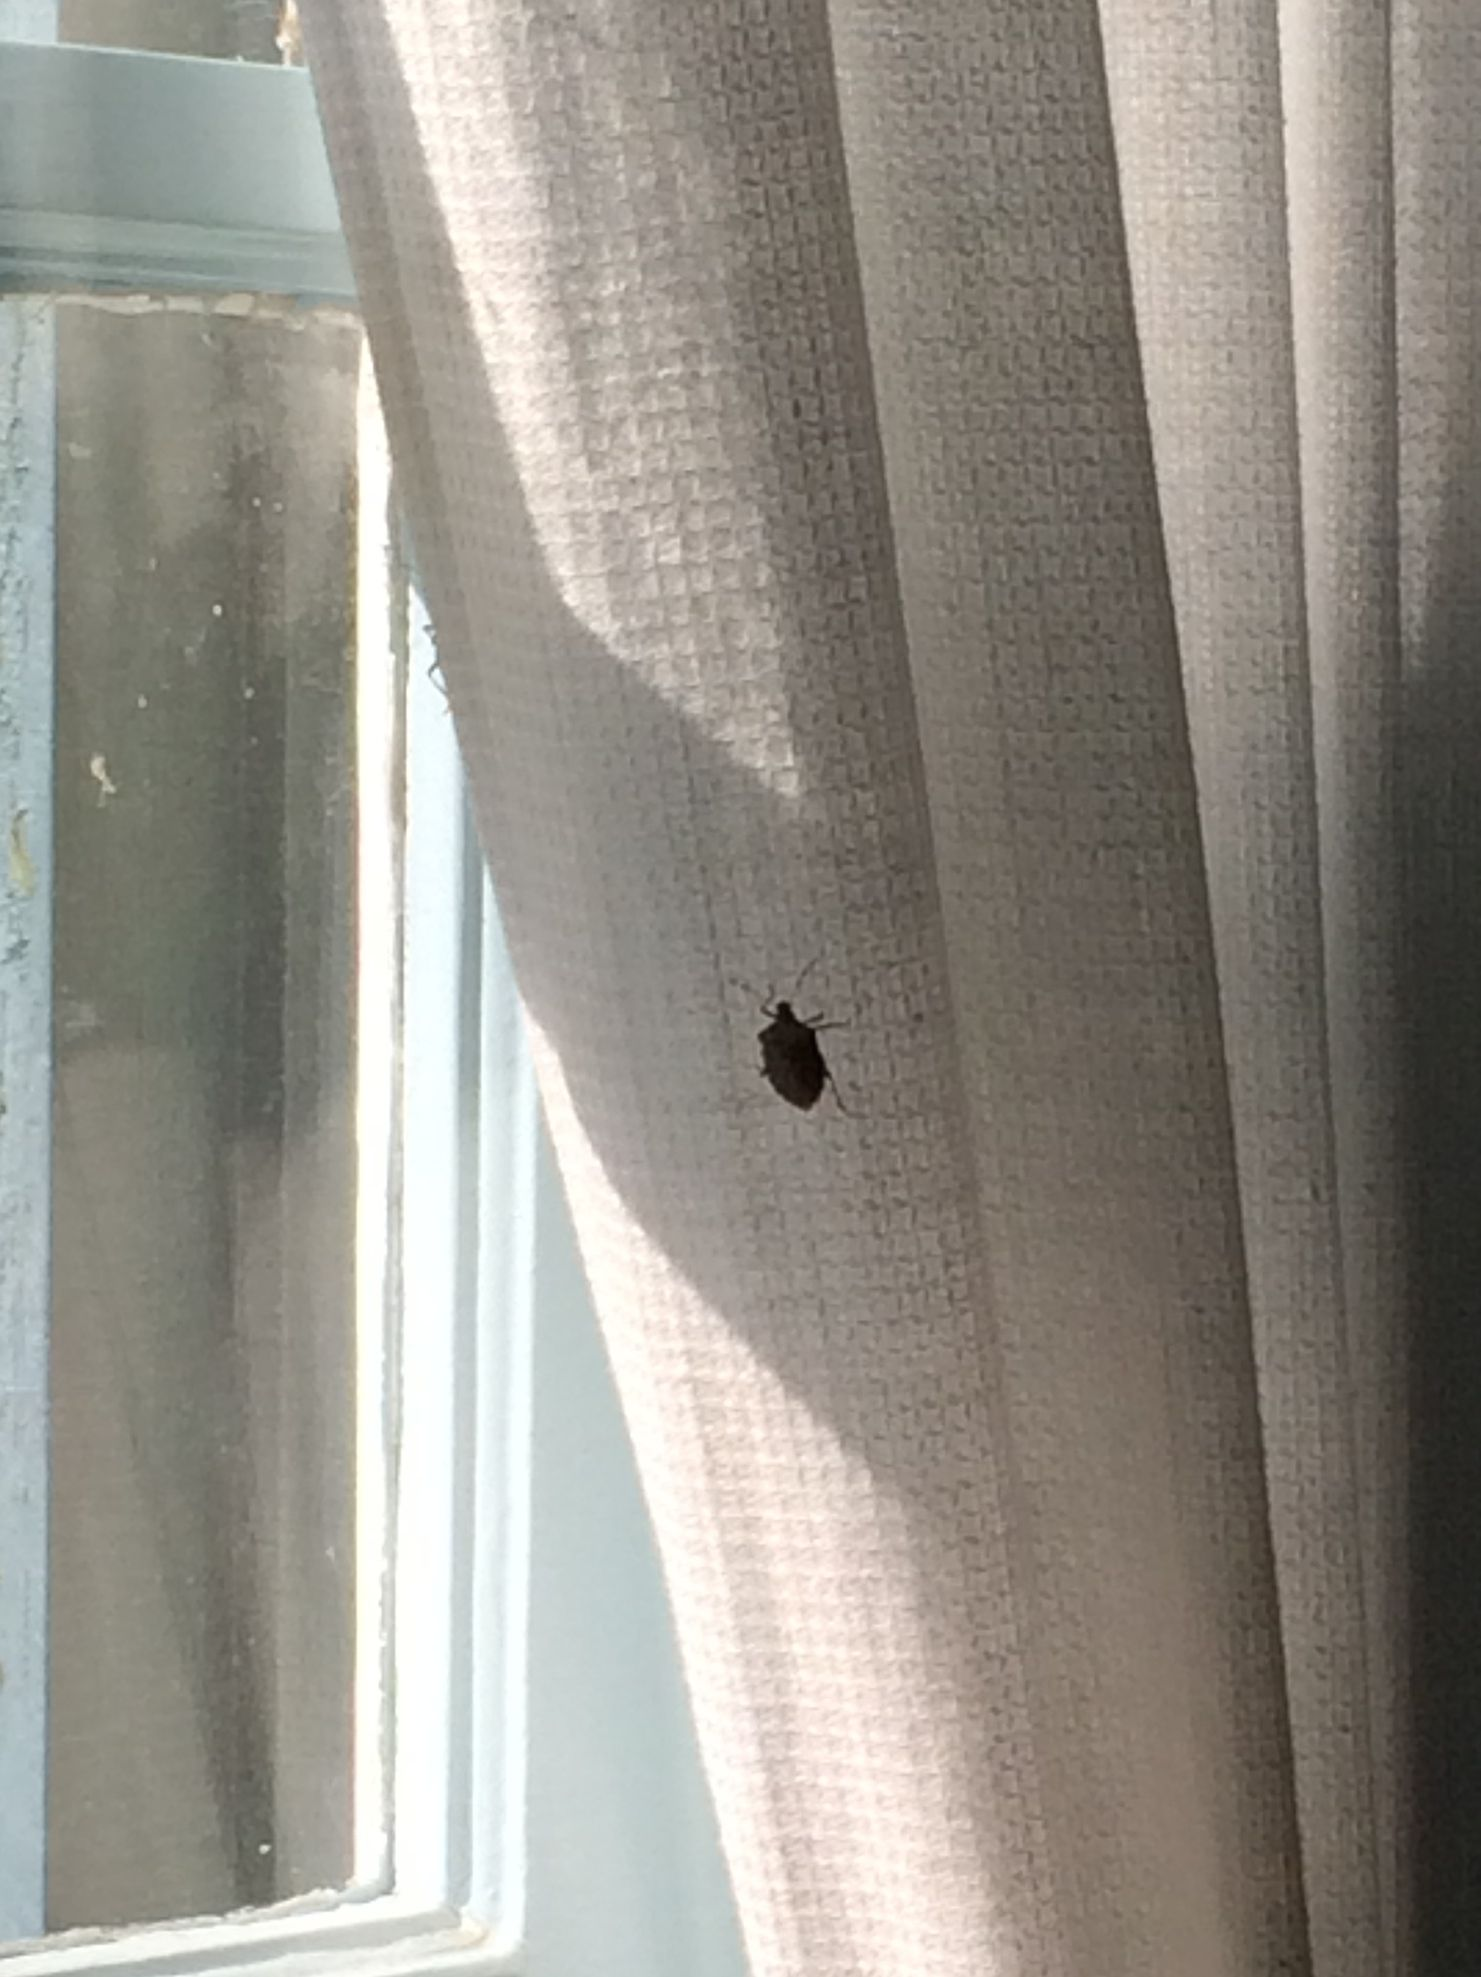 Stink Bug on the Curtain